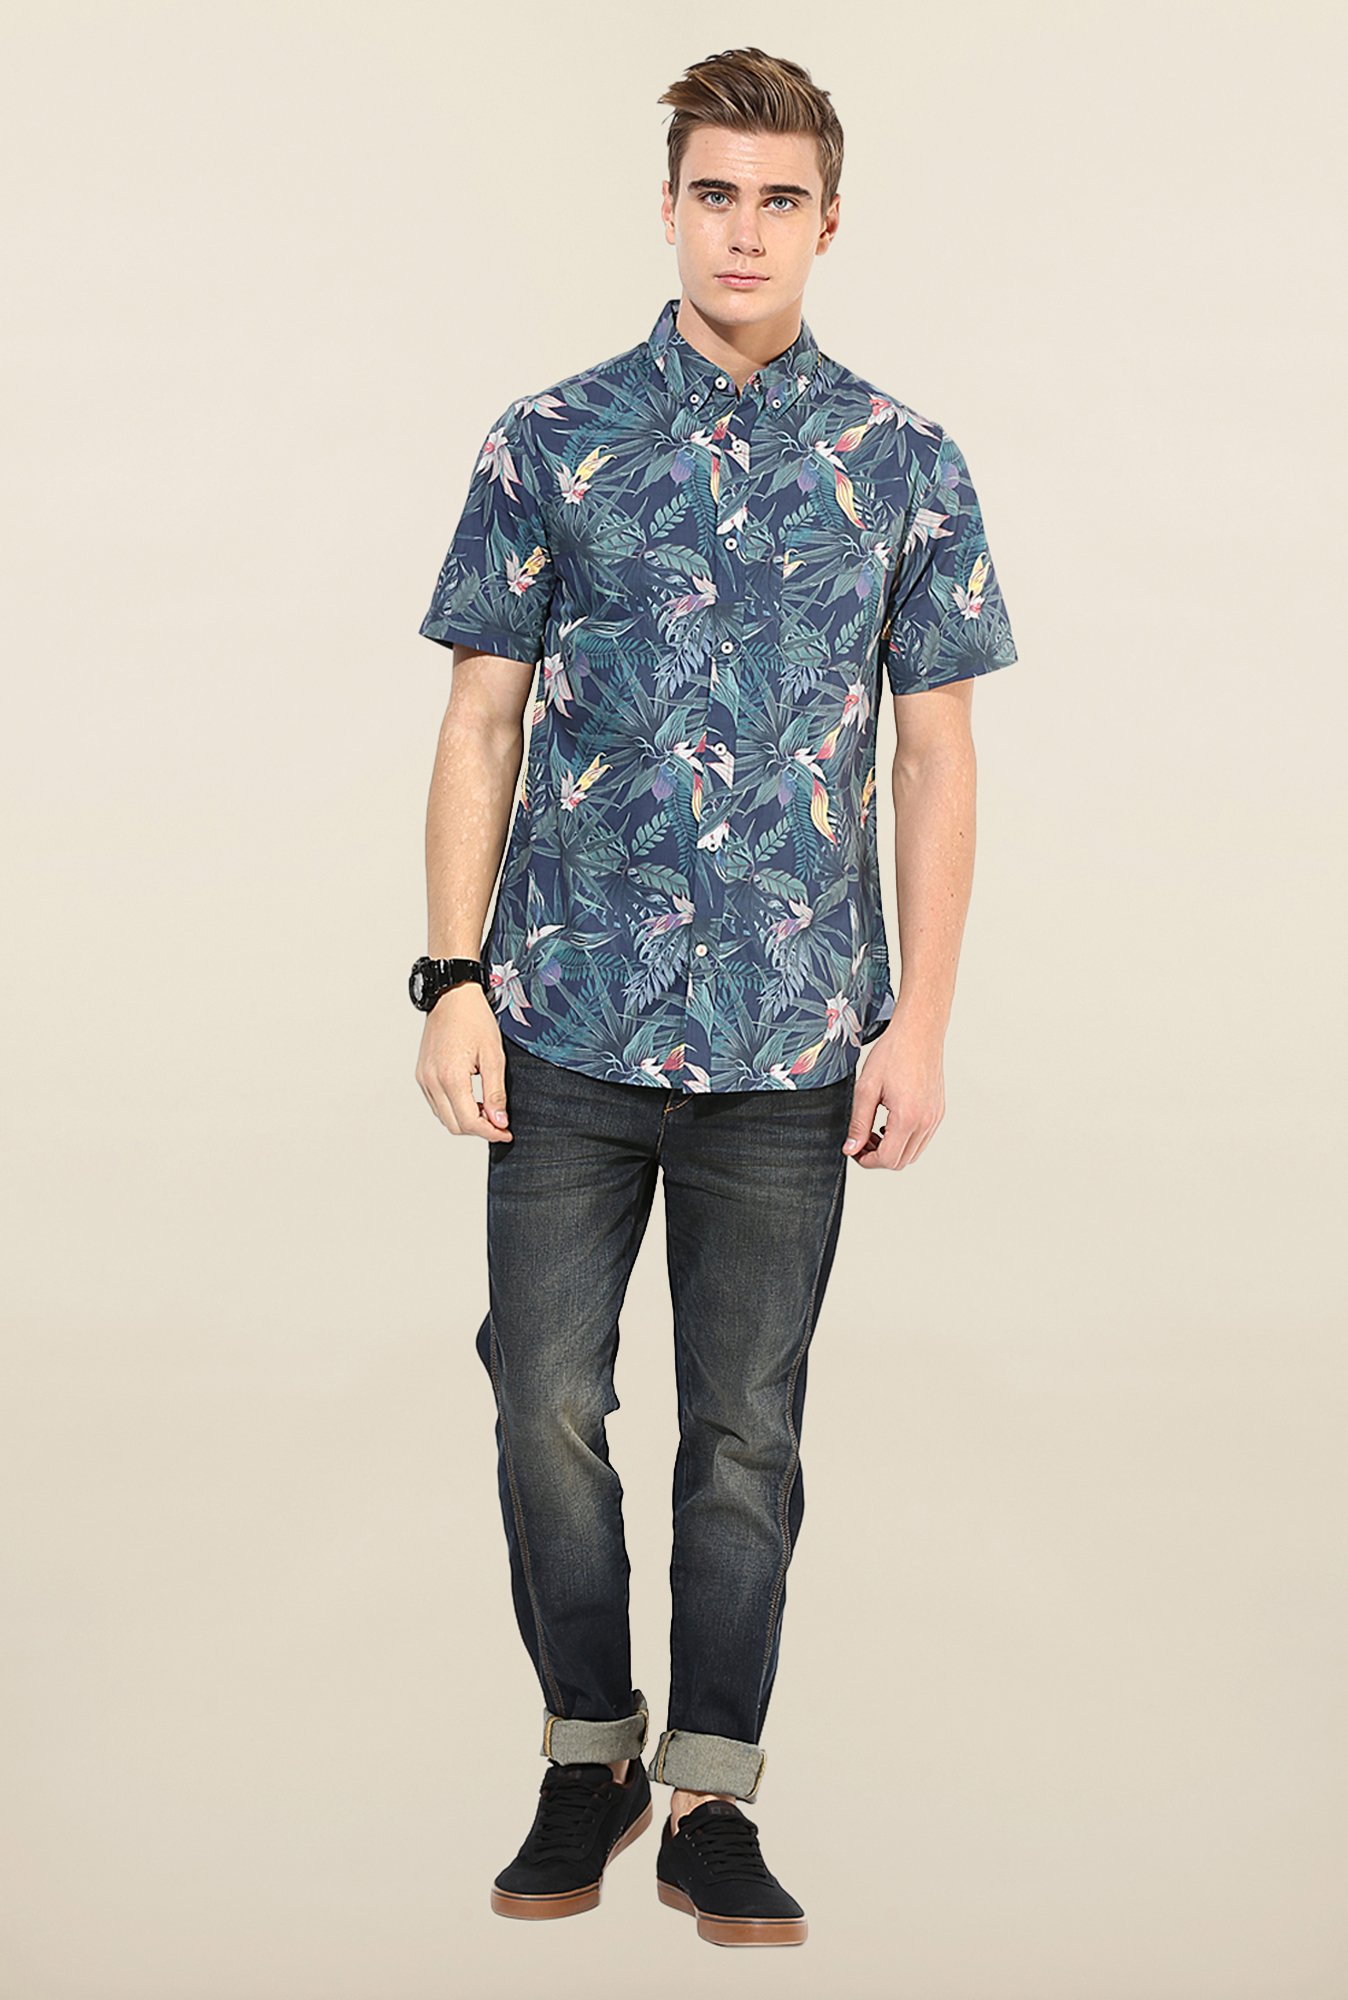 Jack & Jones Navy Floral Printed Shirt